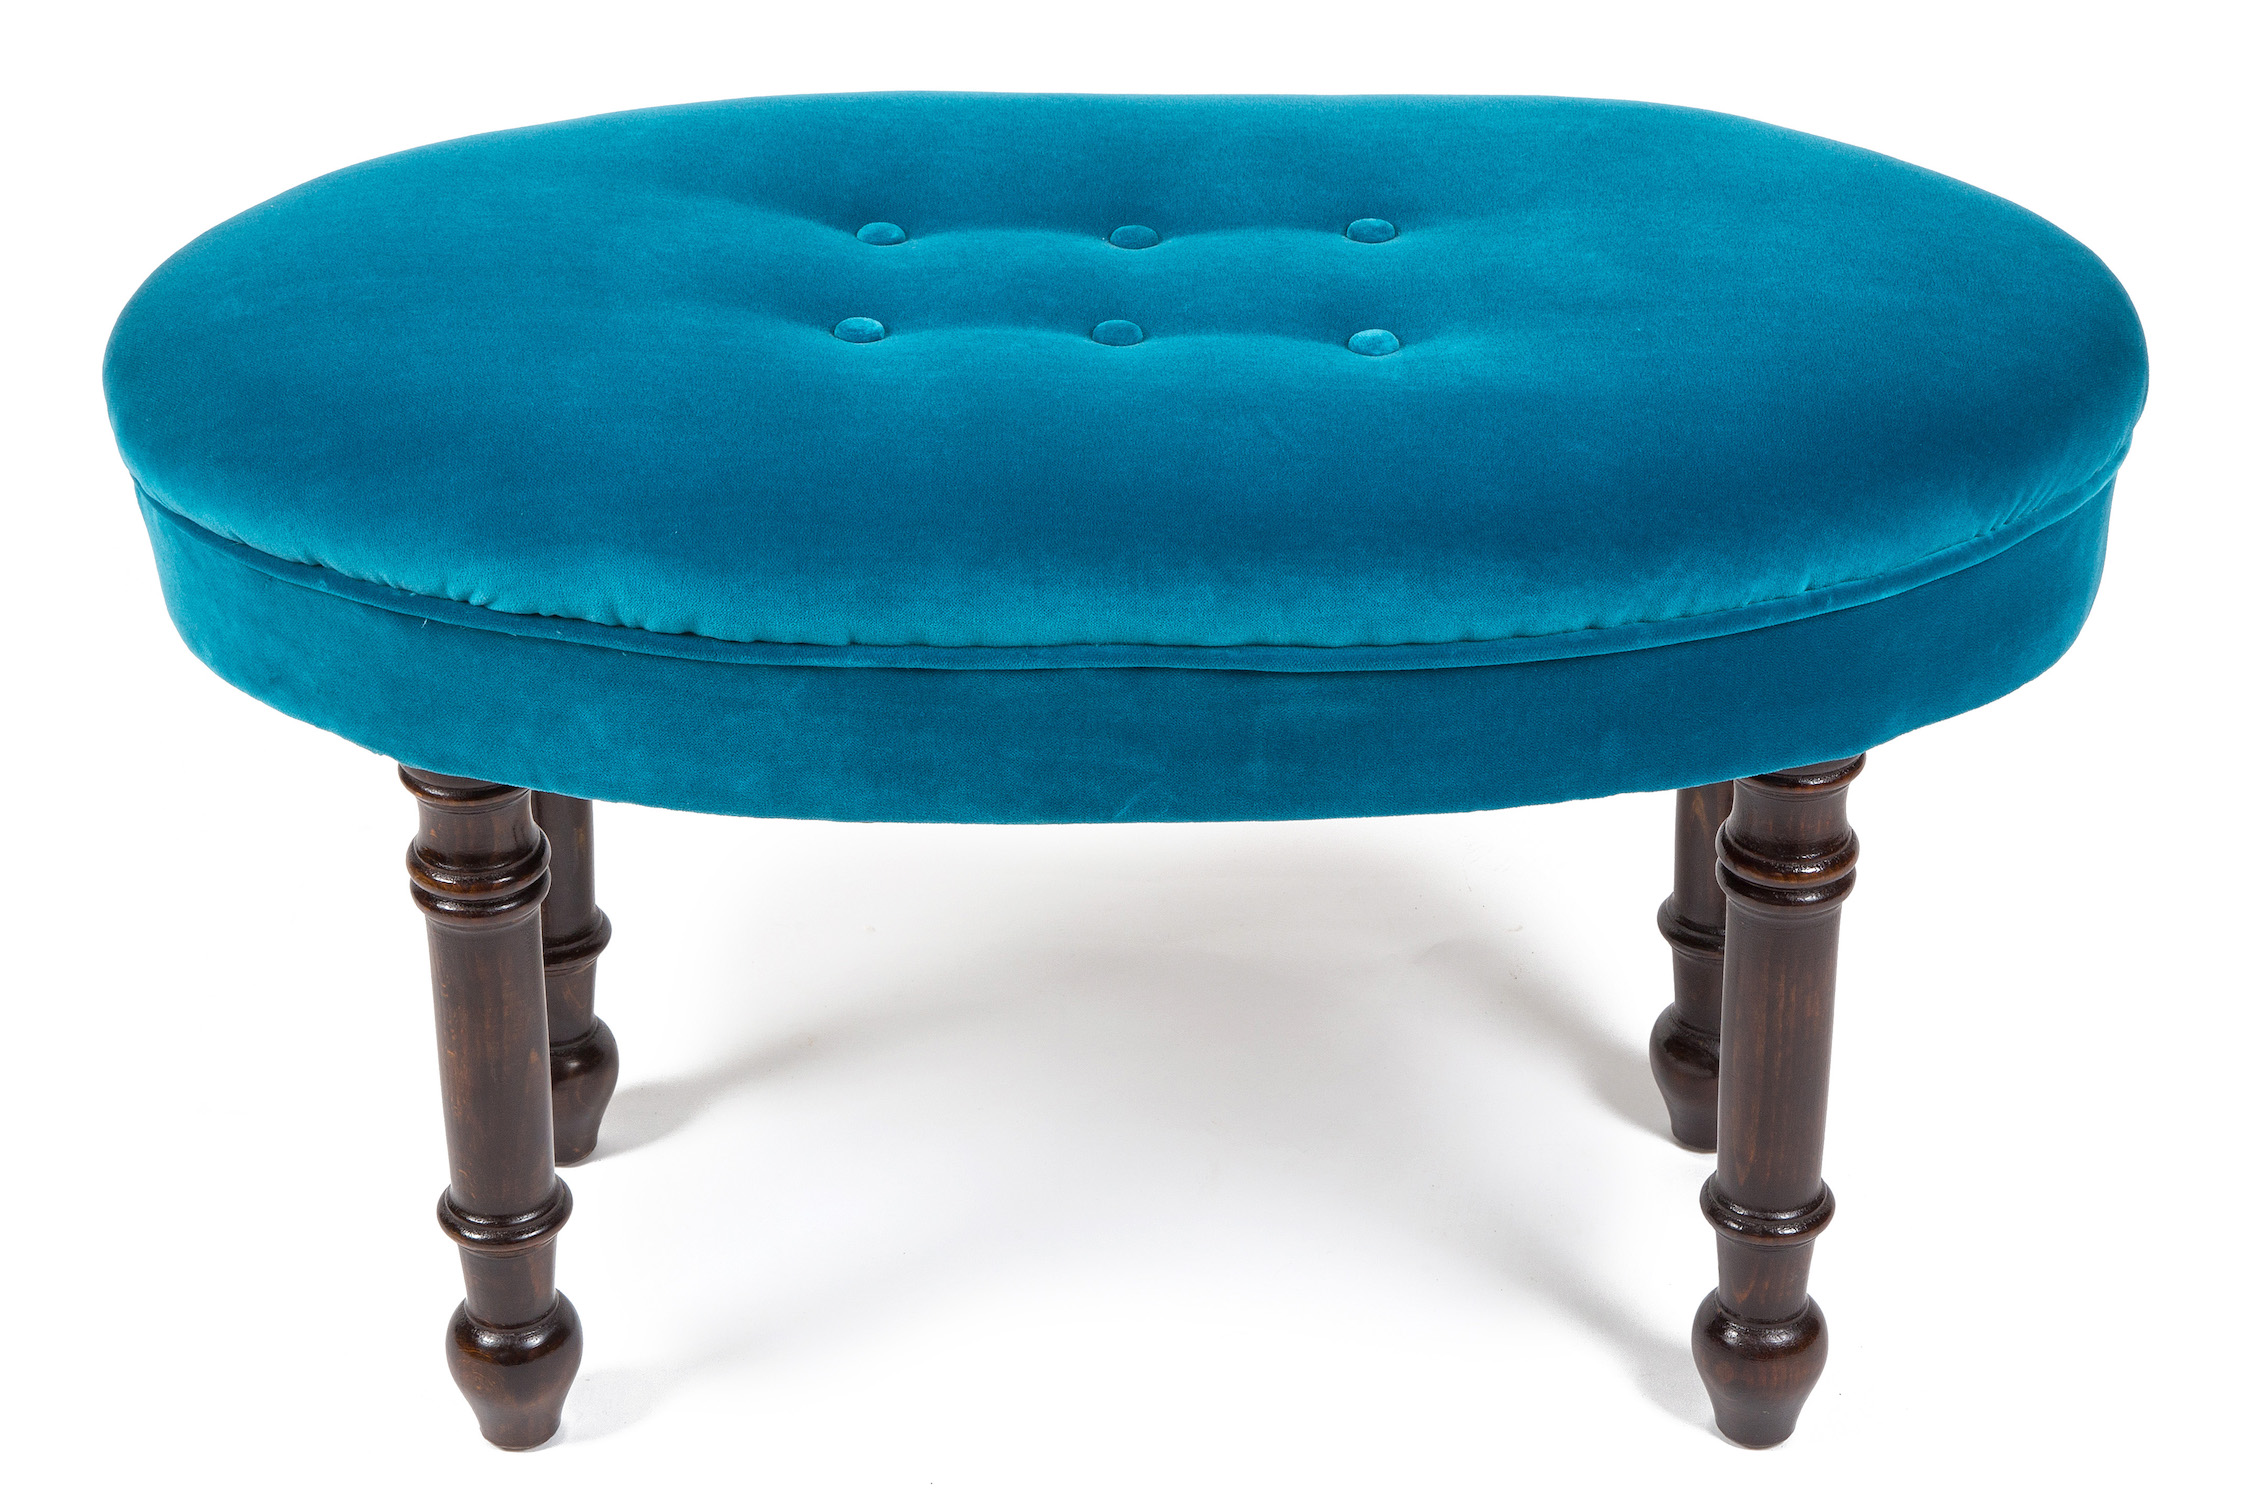 Oval Roll Top Piano Stool with Buttons and Turned Legs